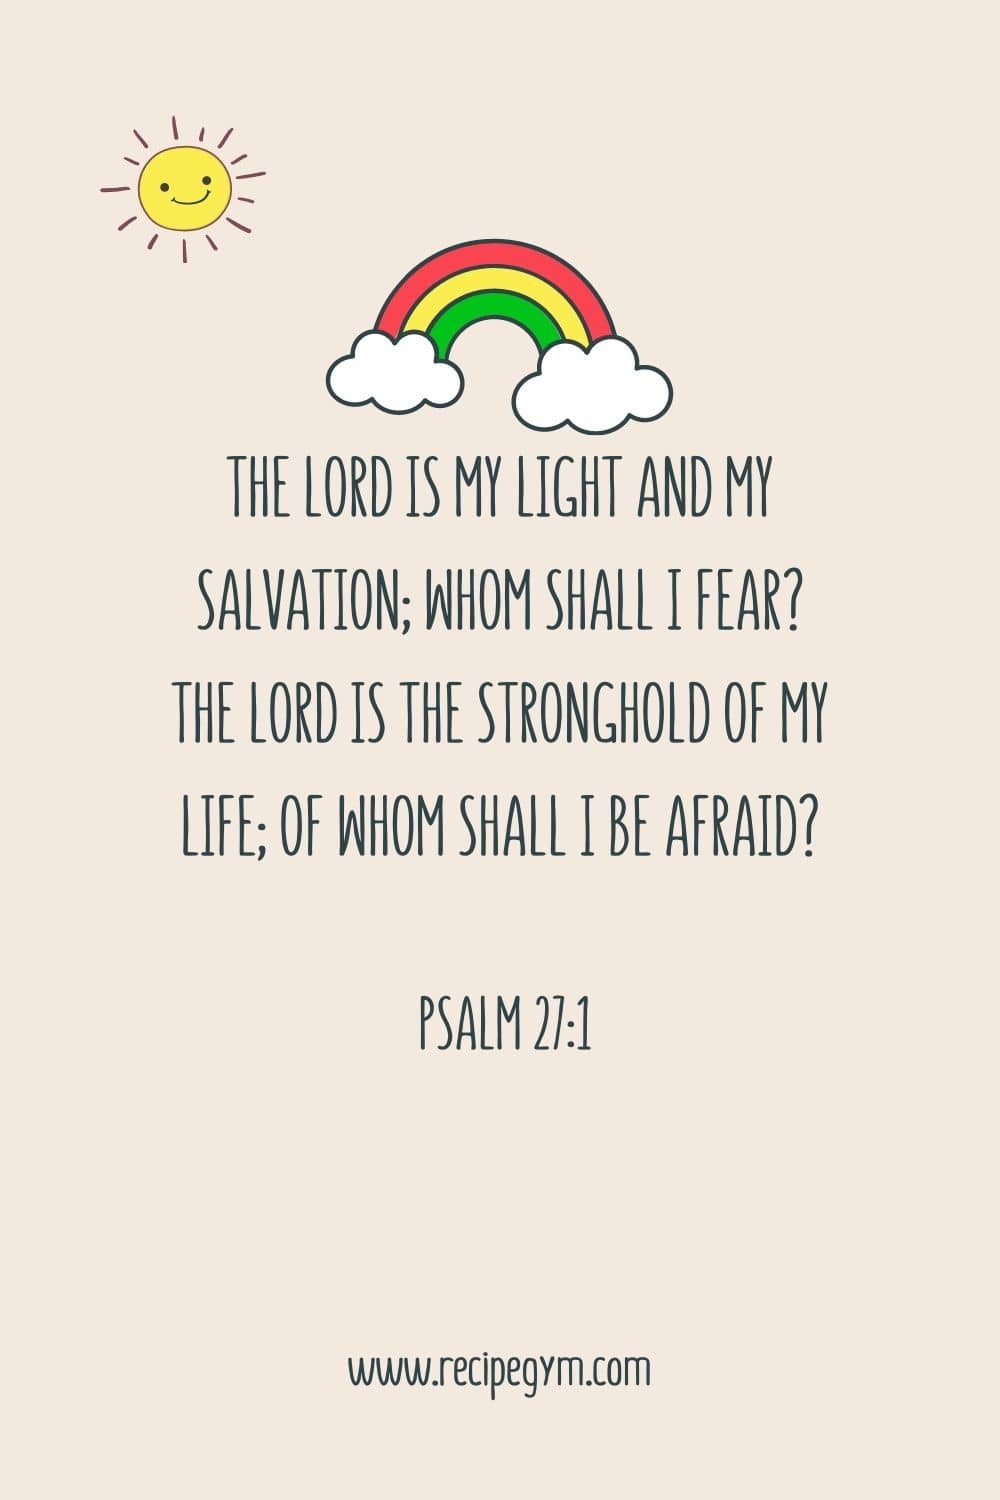 30 promising bible verses for strength to fortify your spirit and life   faith fitness food